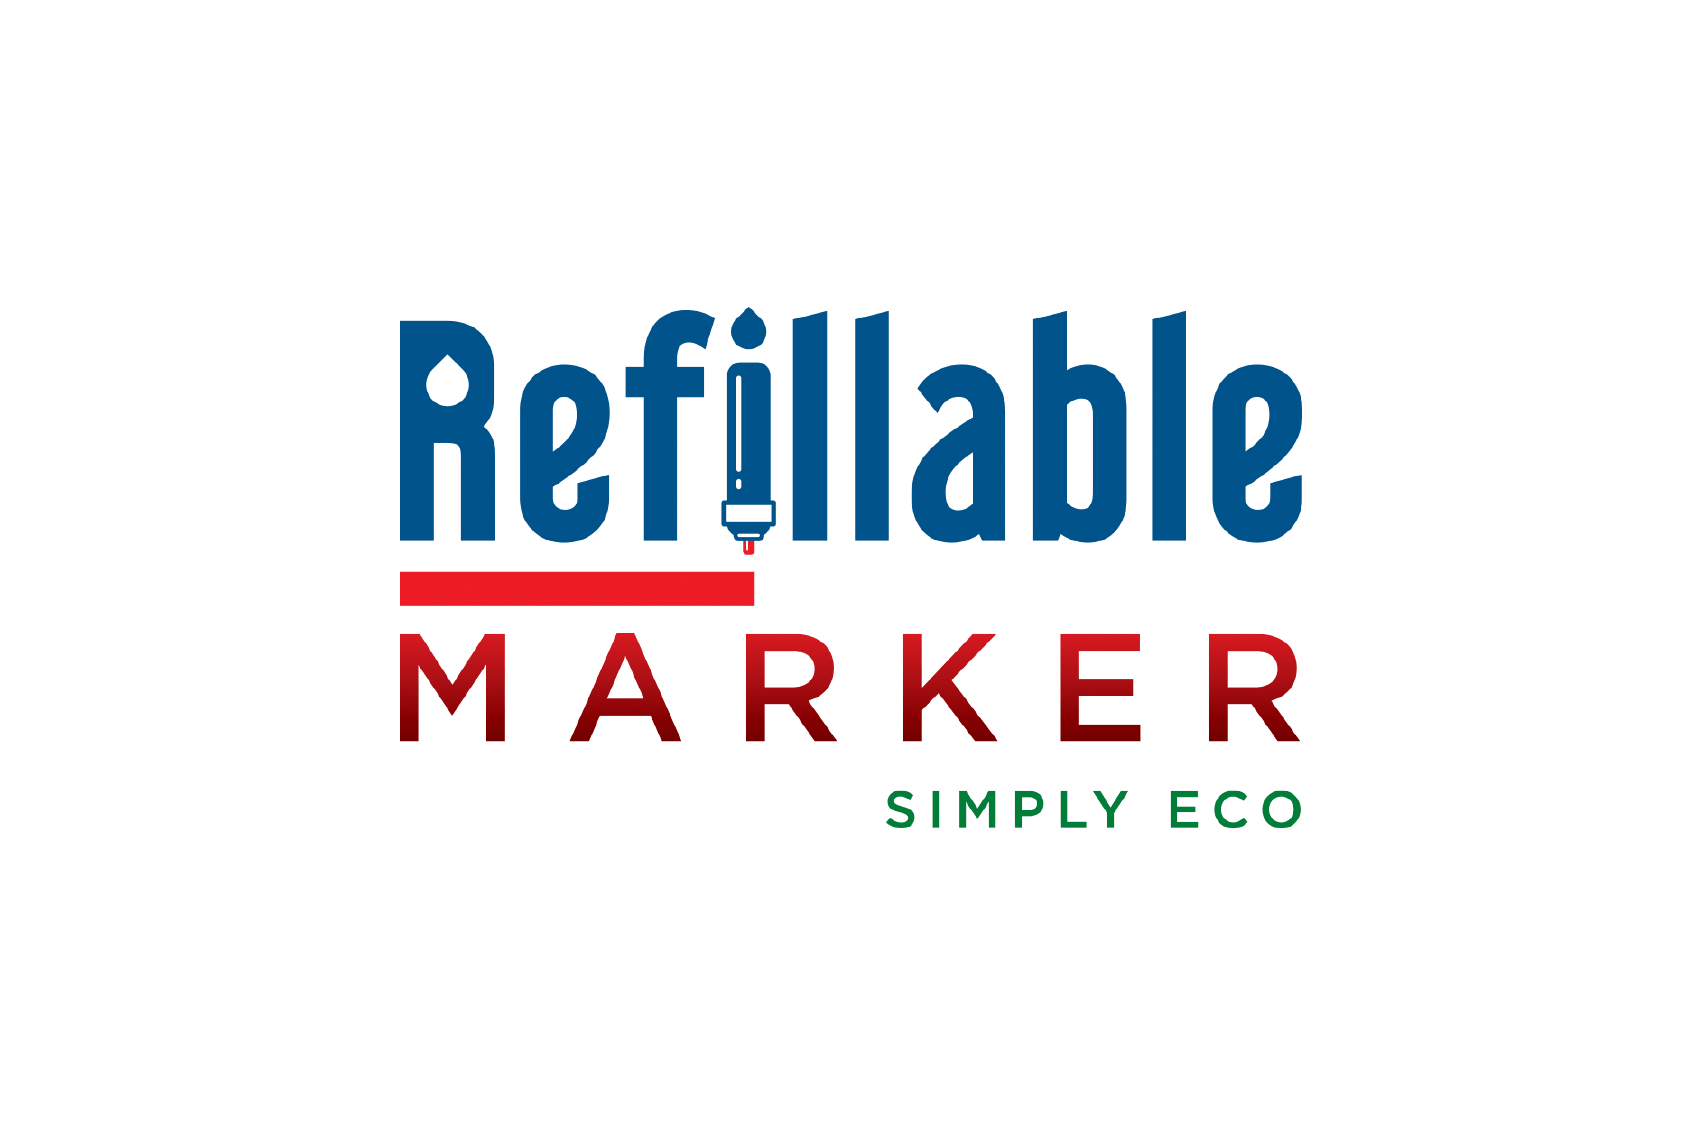 Refillable Marker by Flexspace